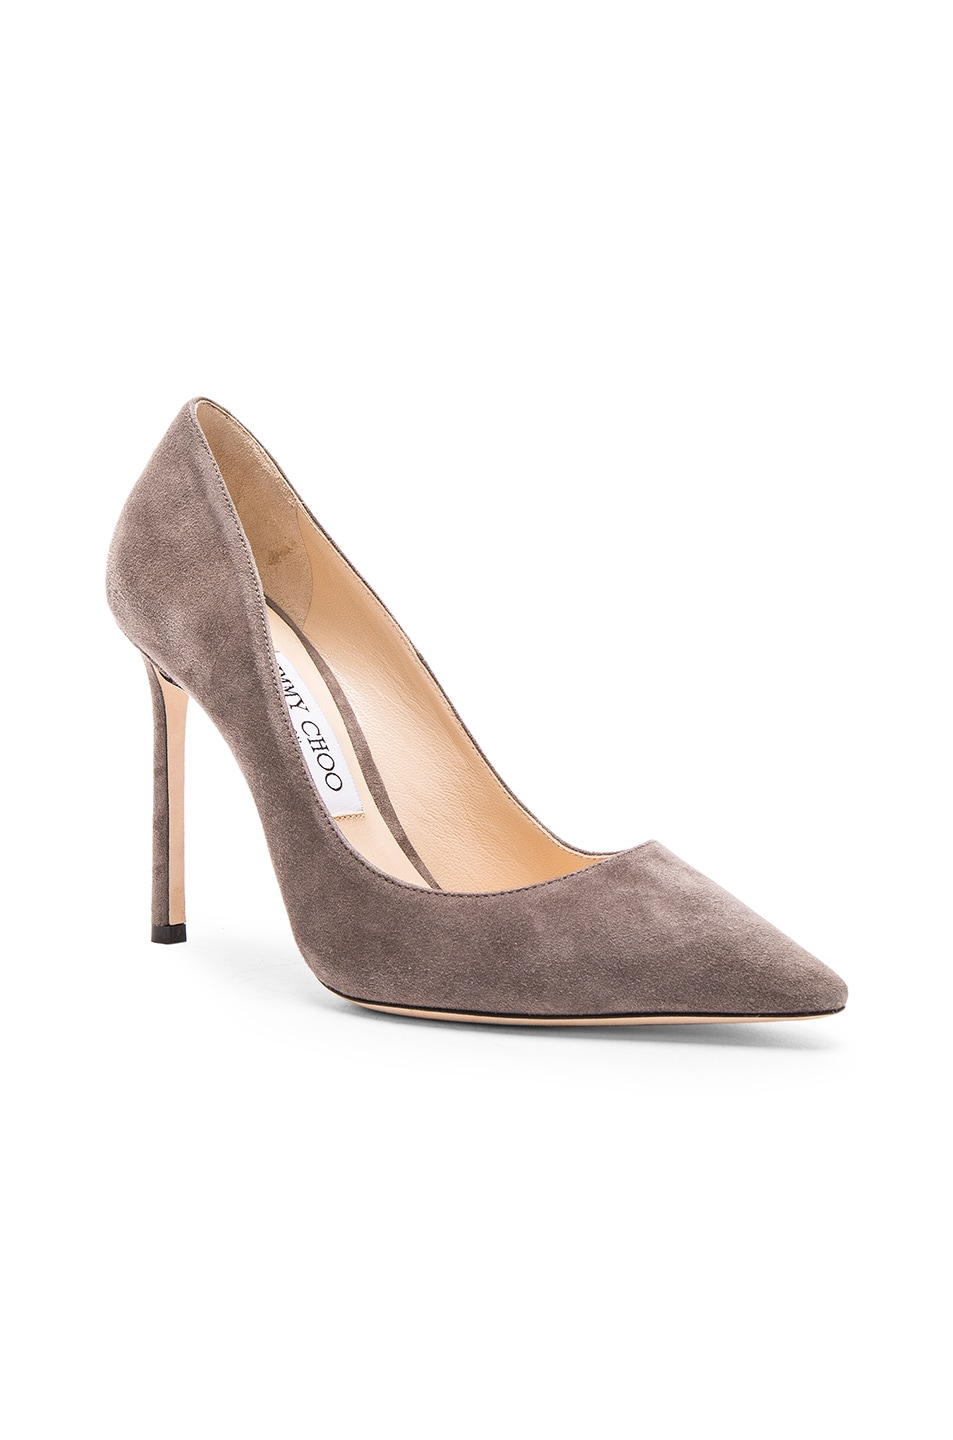 Image 2 of Jimmy Choo Suede Romy Pumps in Taupe Grey